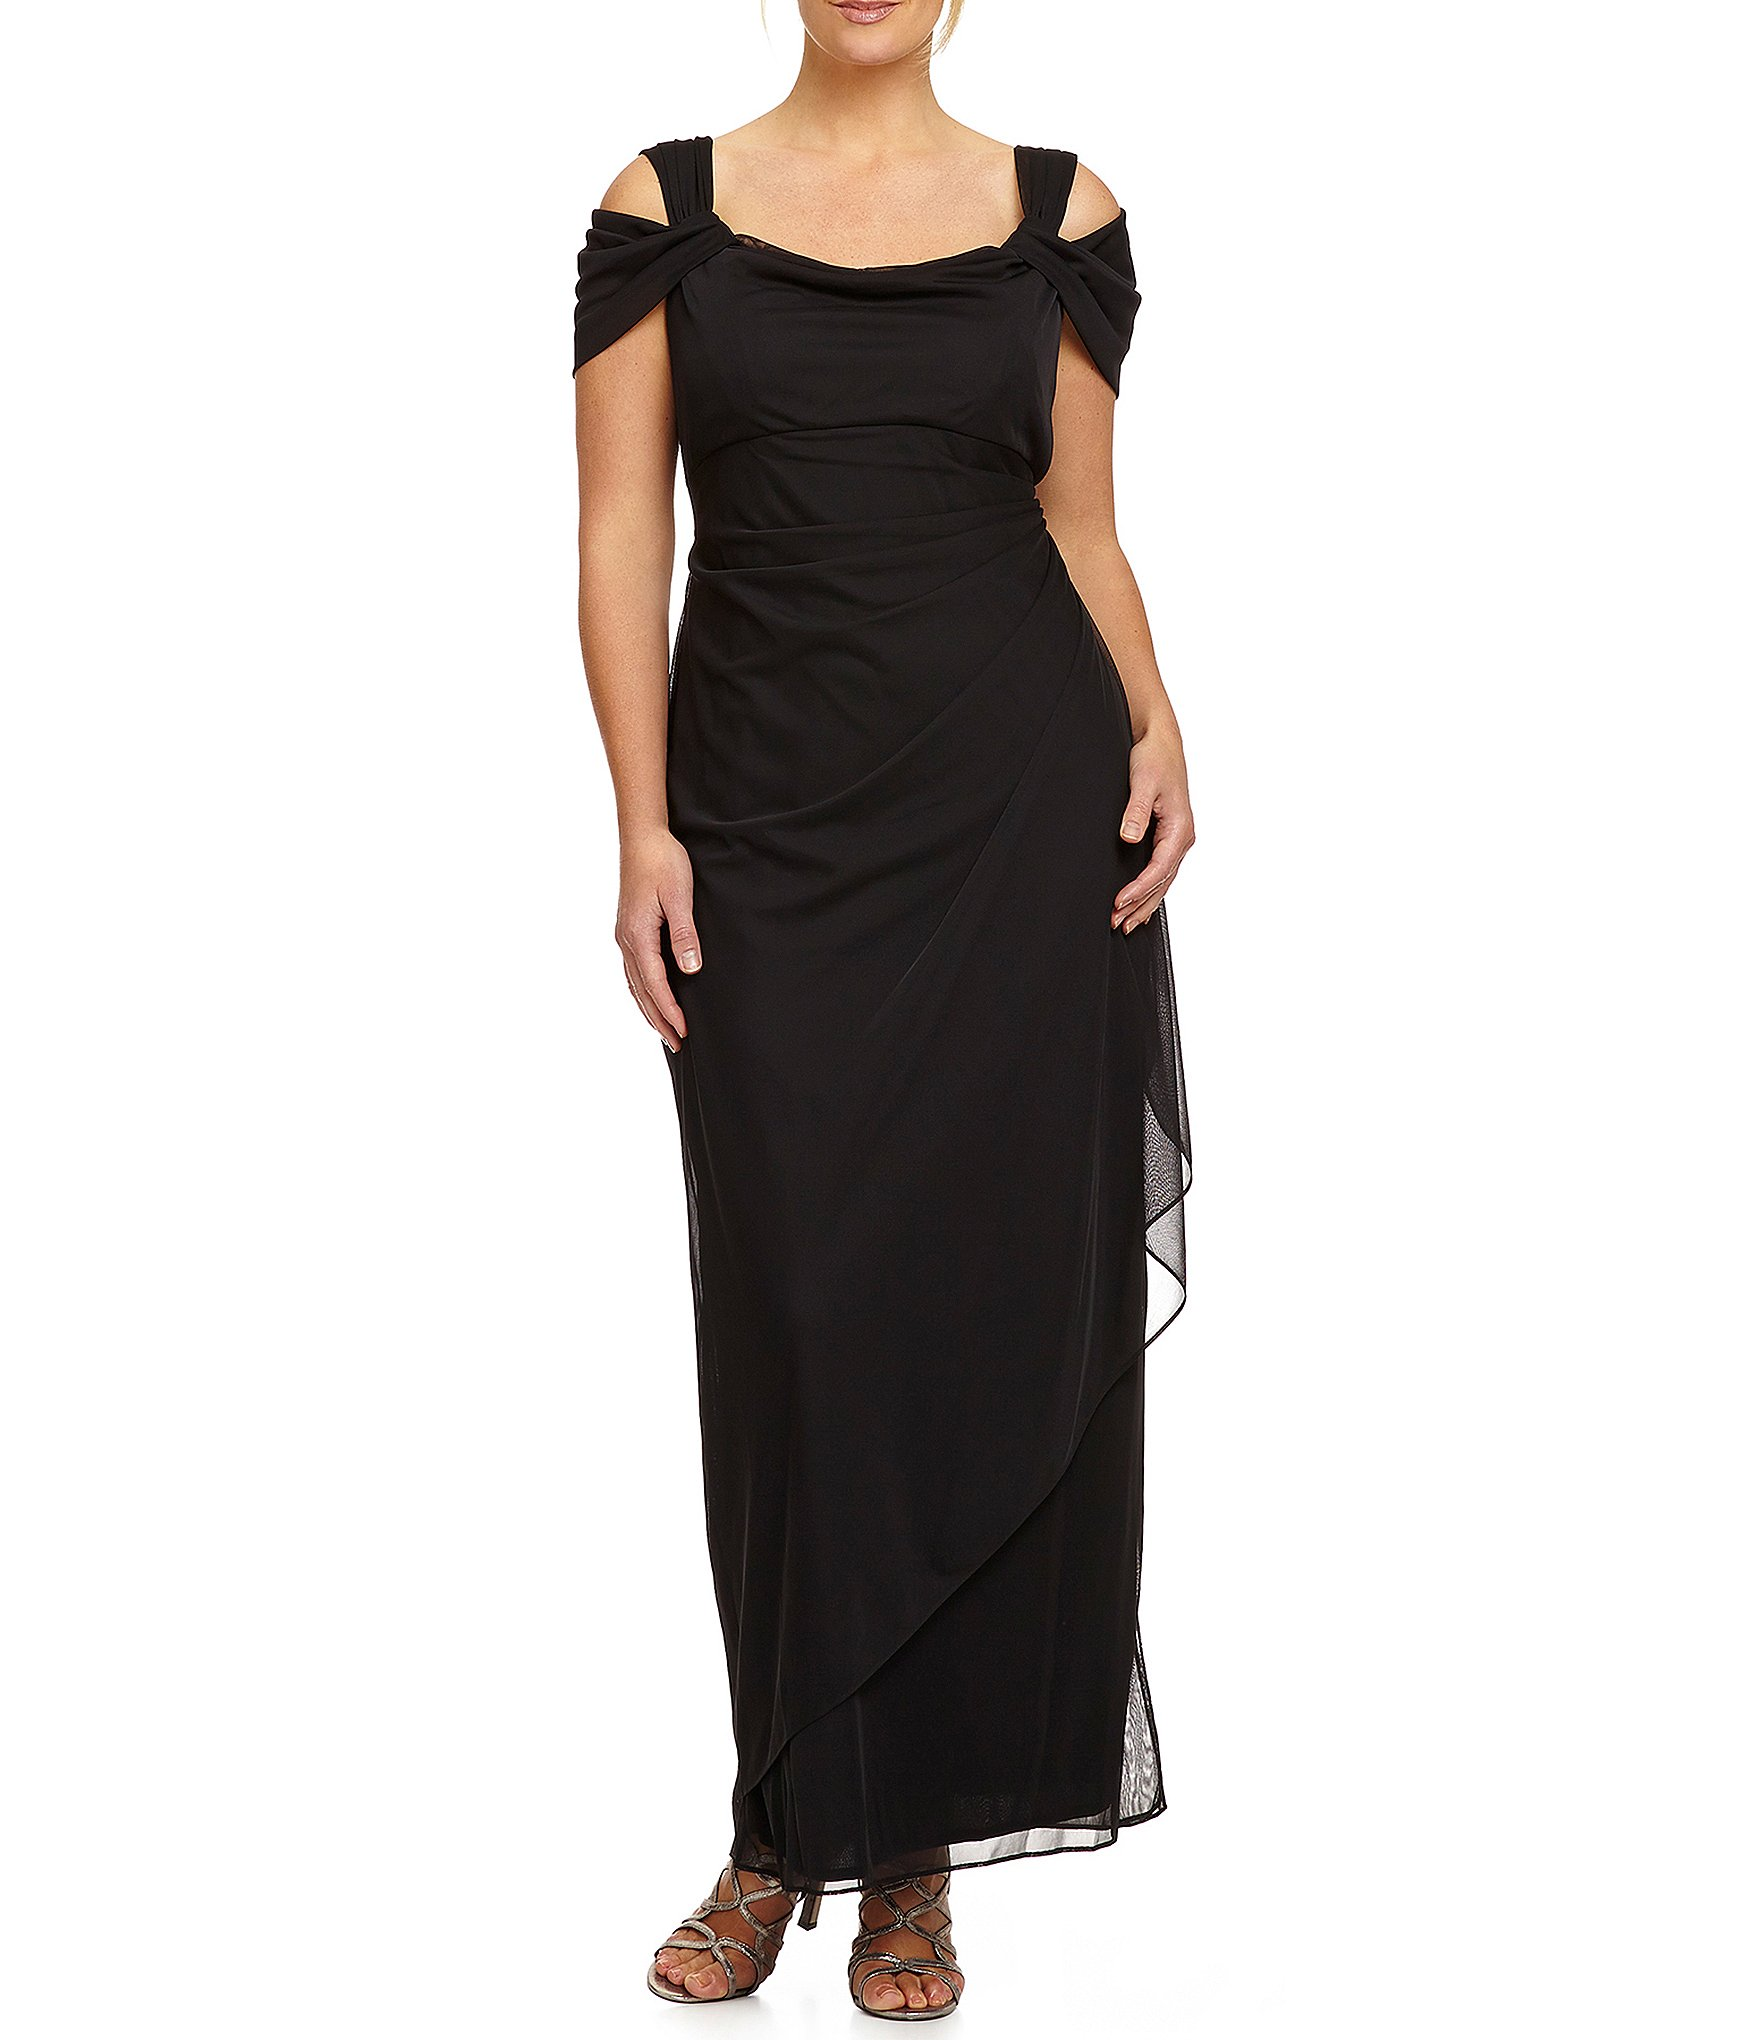 Women\'s Plus-Size Dresses & Gowns | Dillards